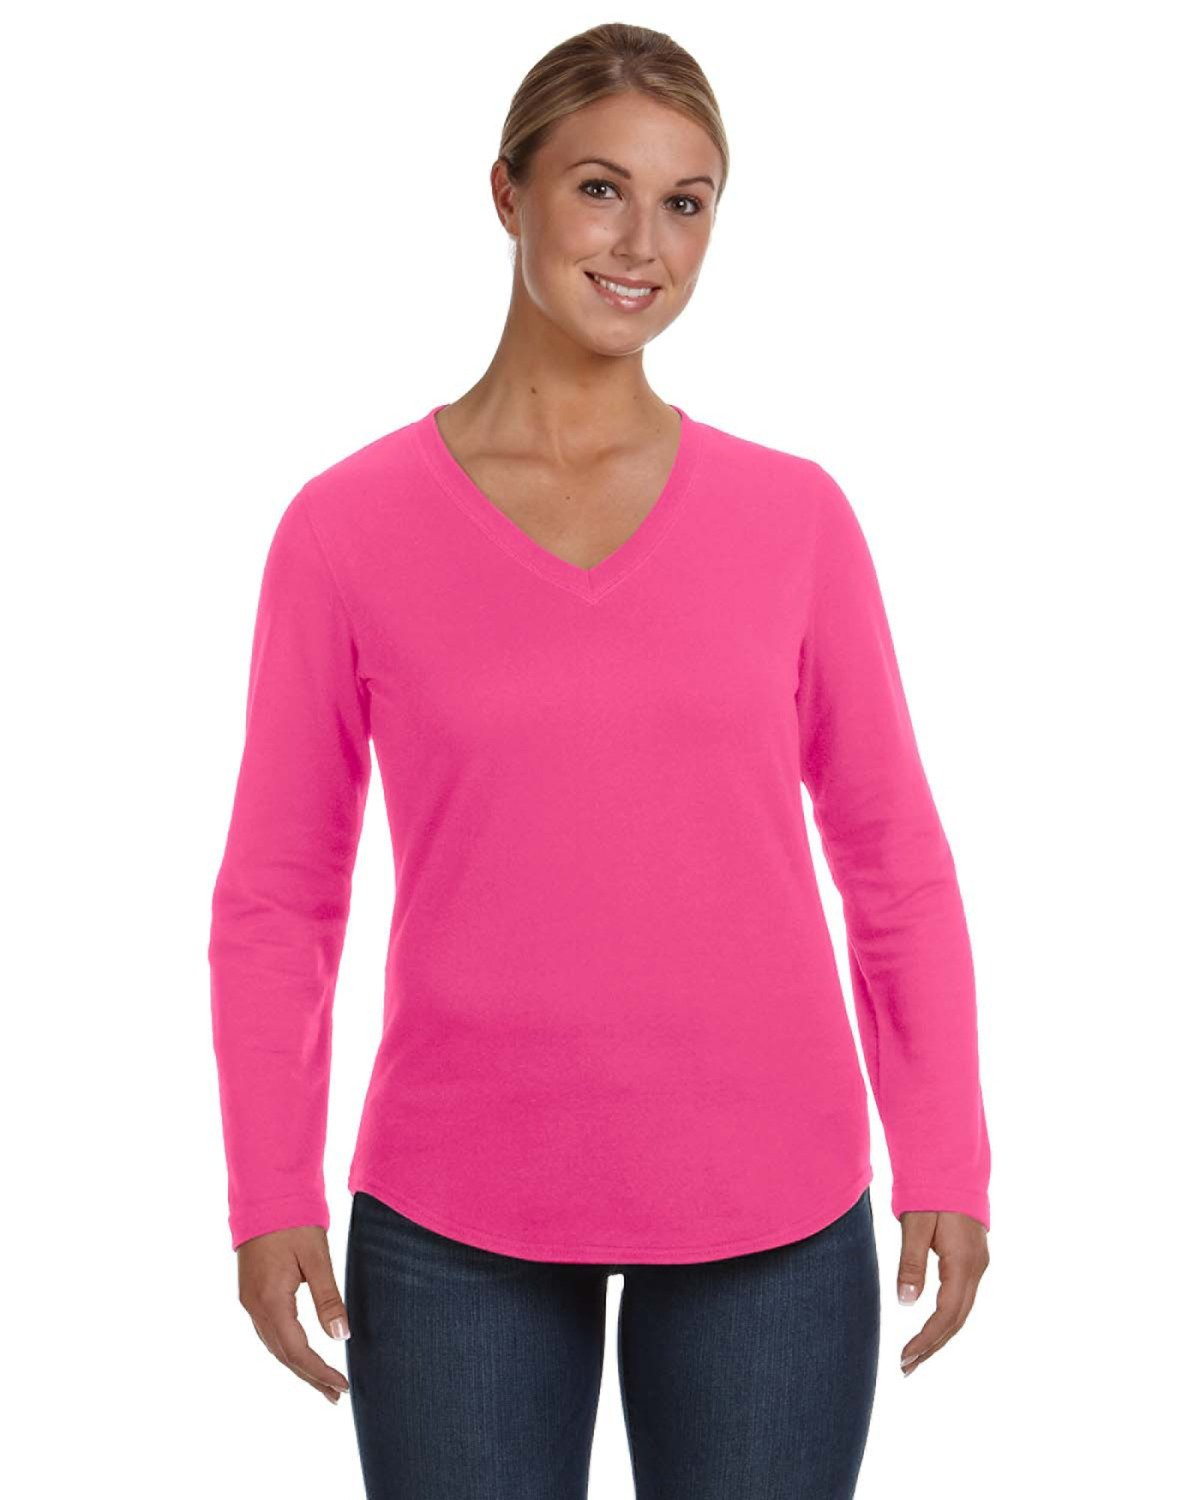 LAT Ladies' French Terry V-Neck T-Shirt HOT PINK